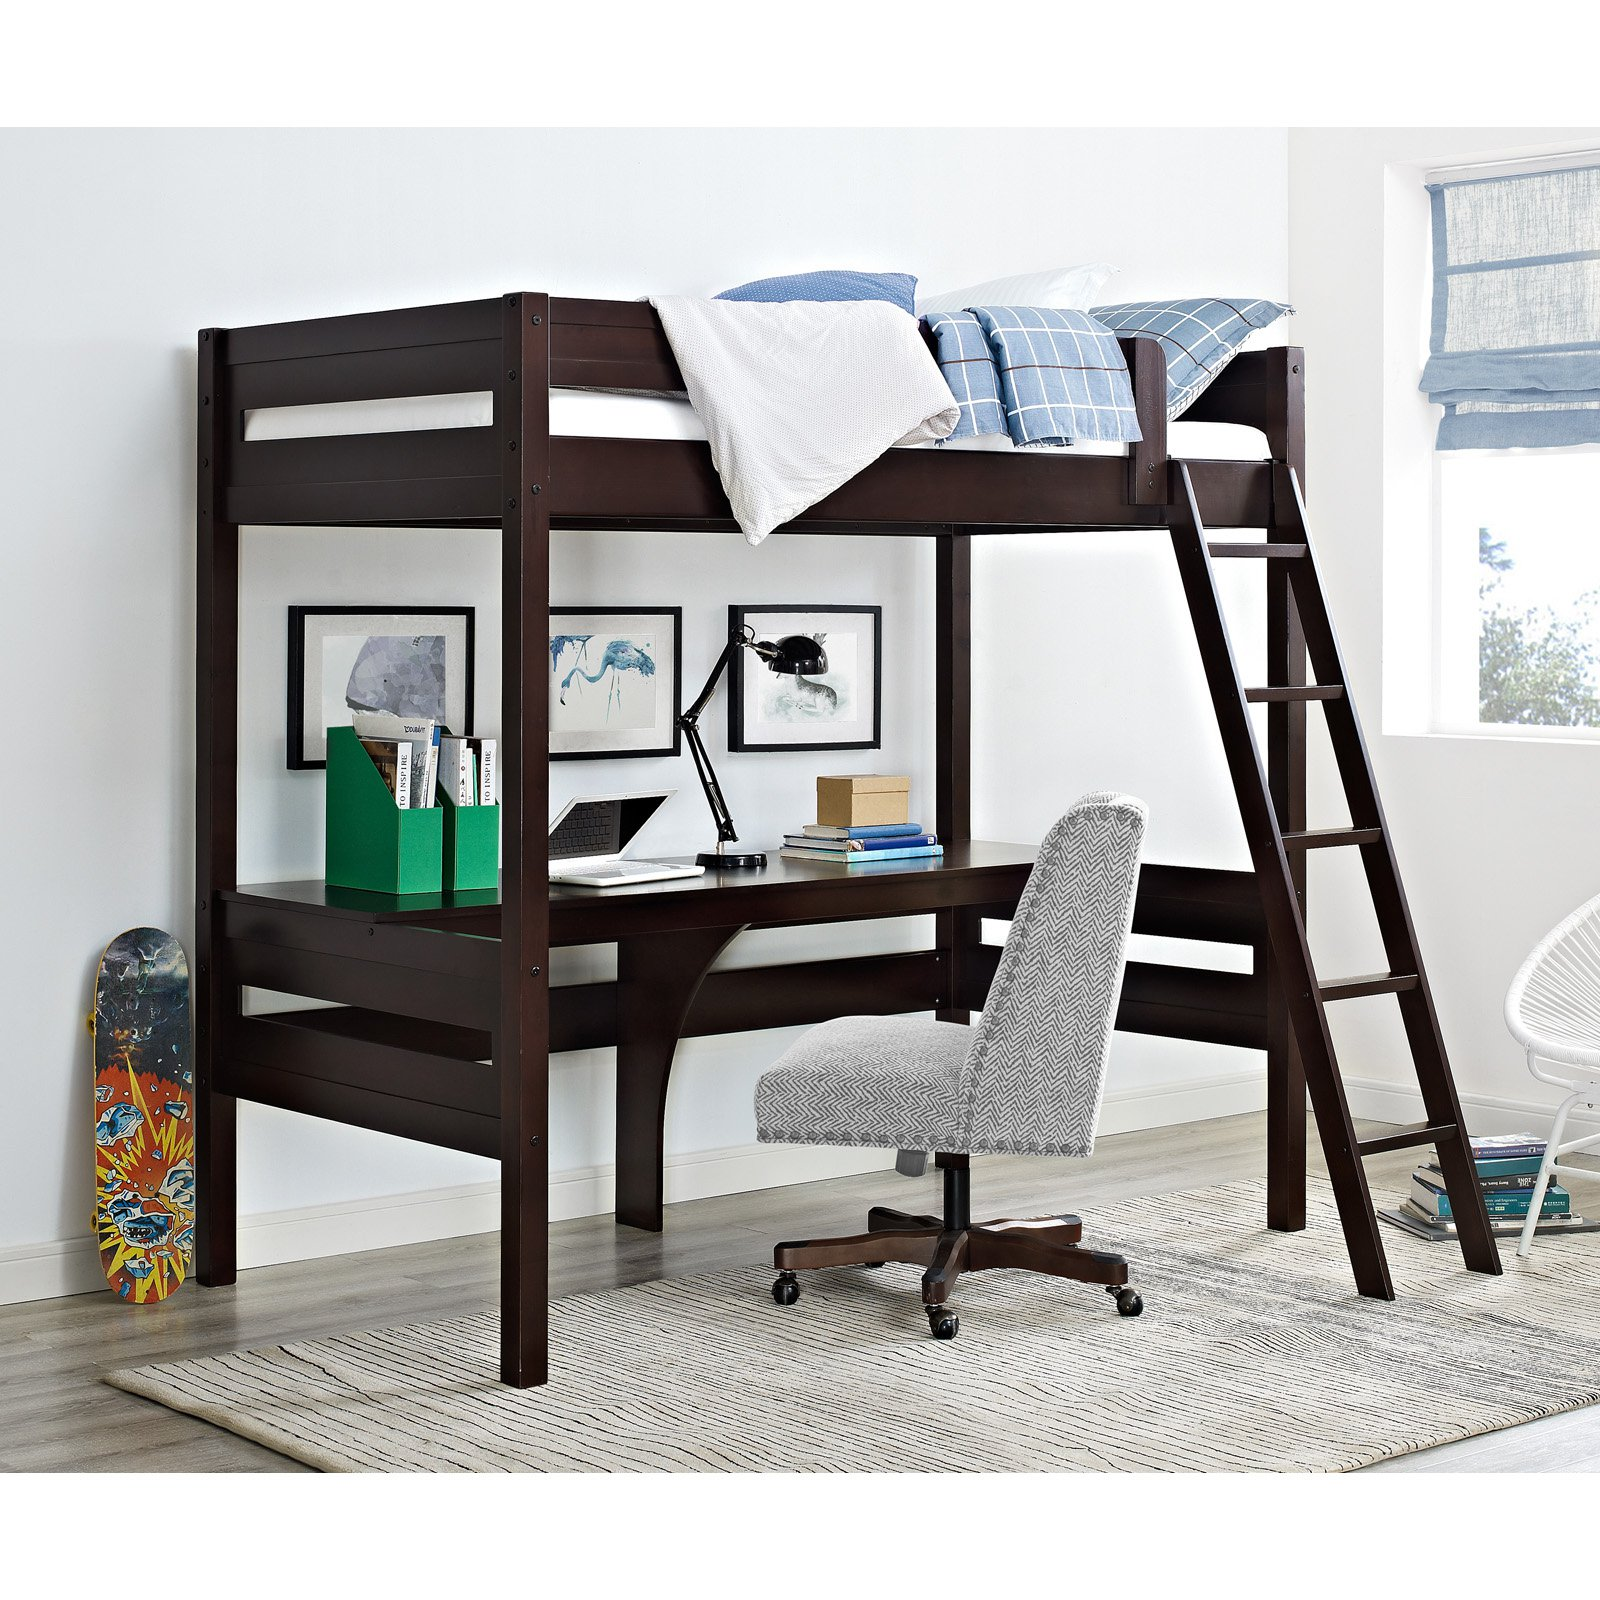 Dorel Living Harlan Twin Wood Loft Bed with Desk, Espresso